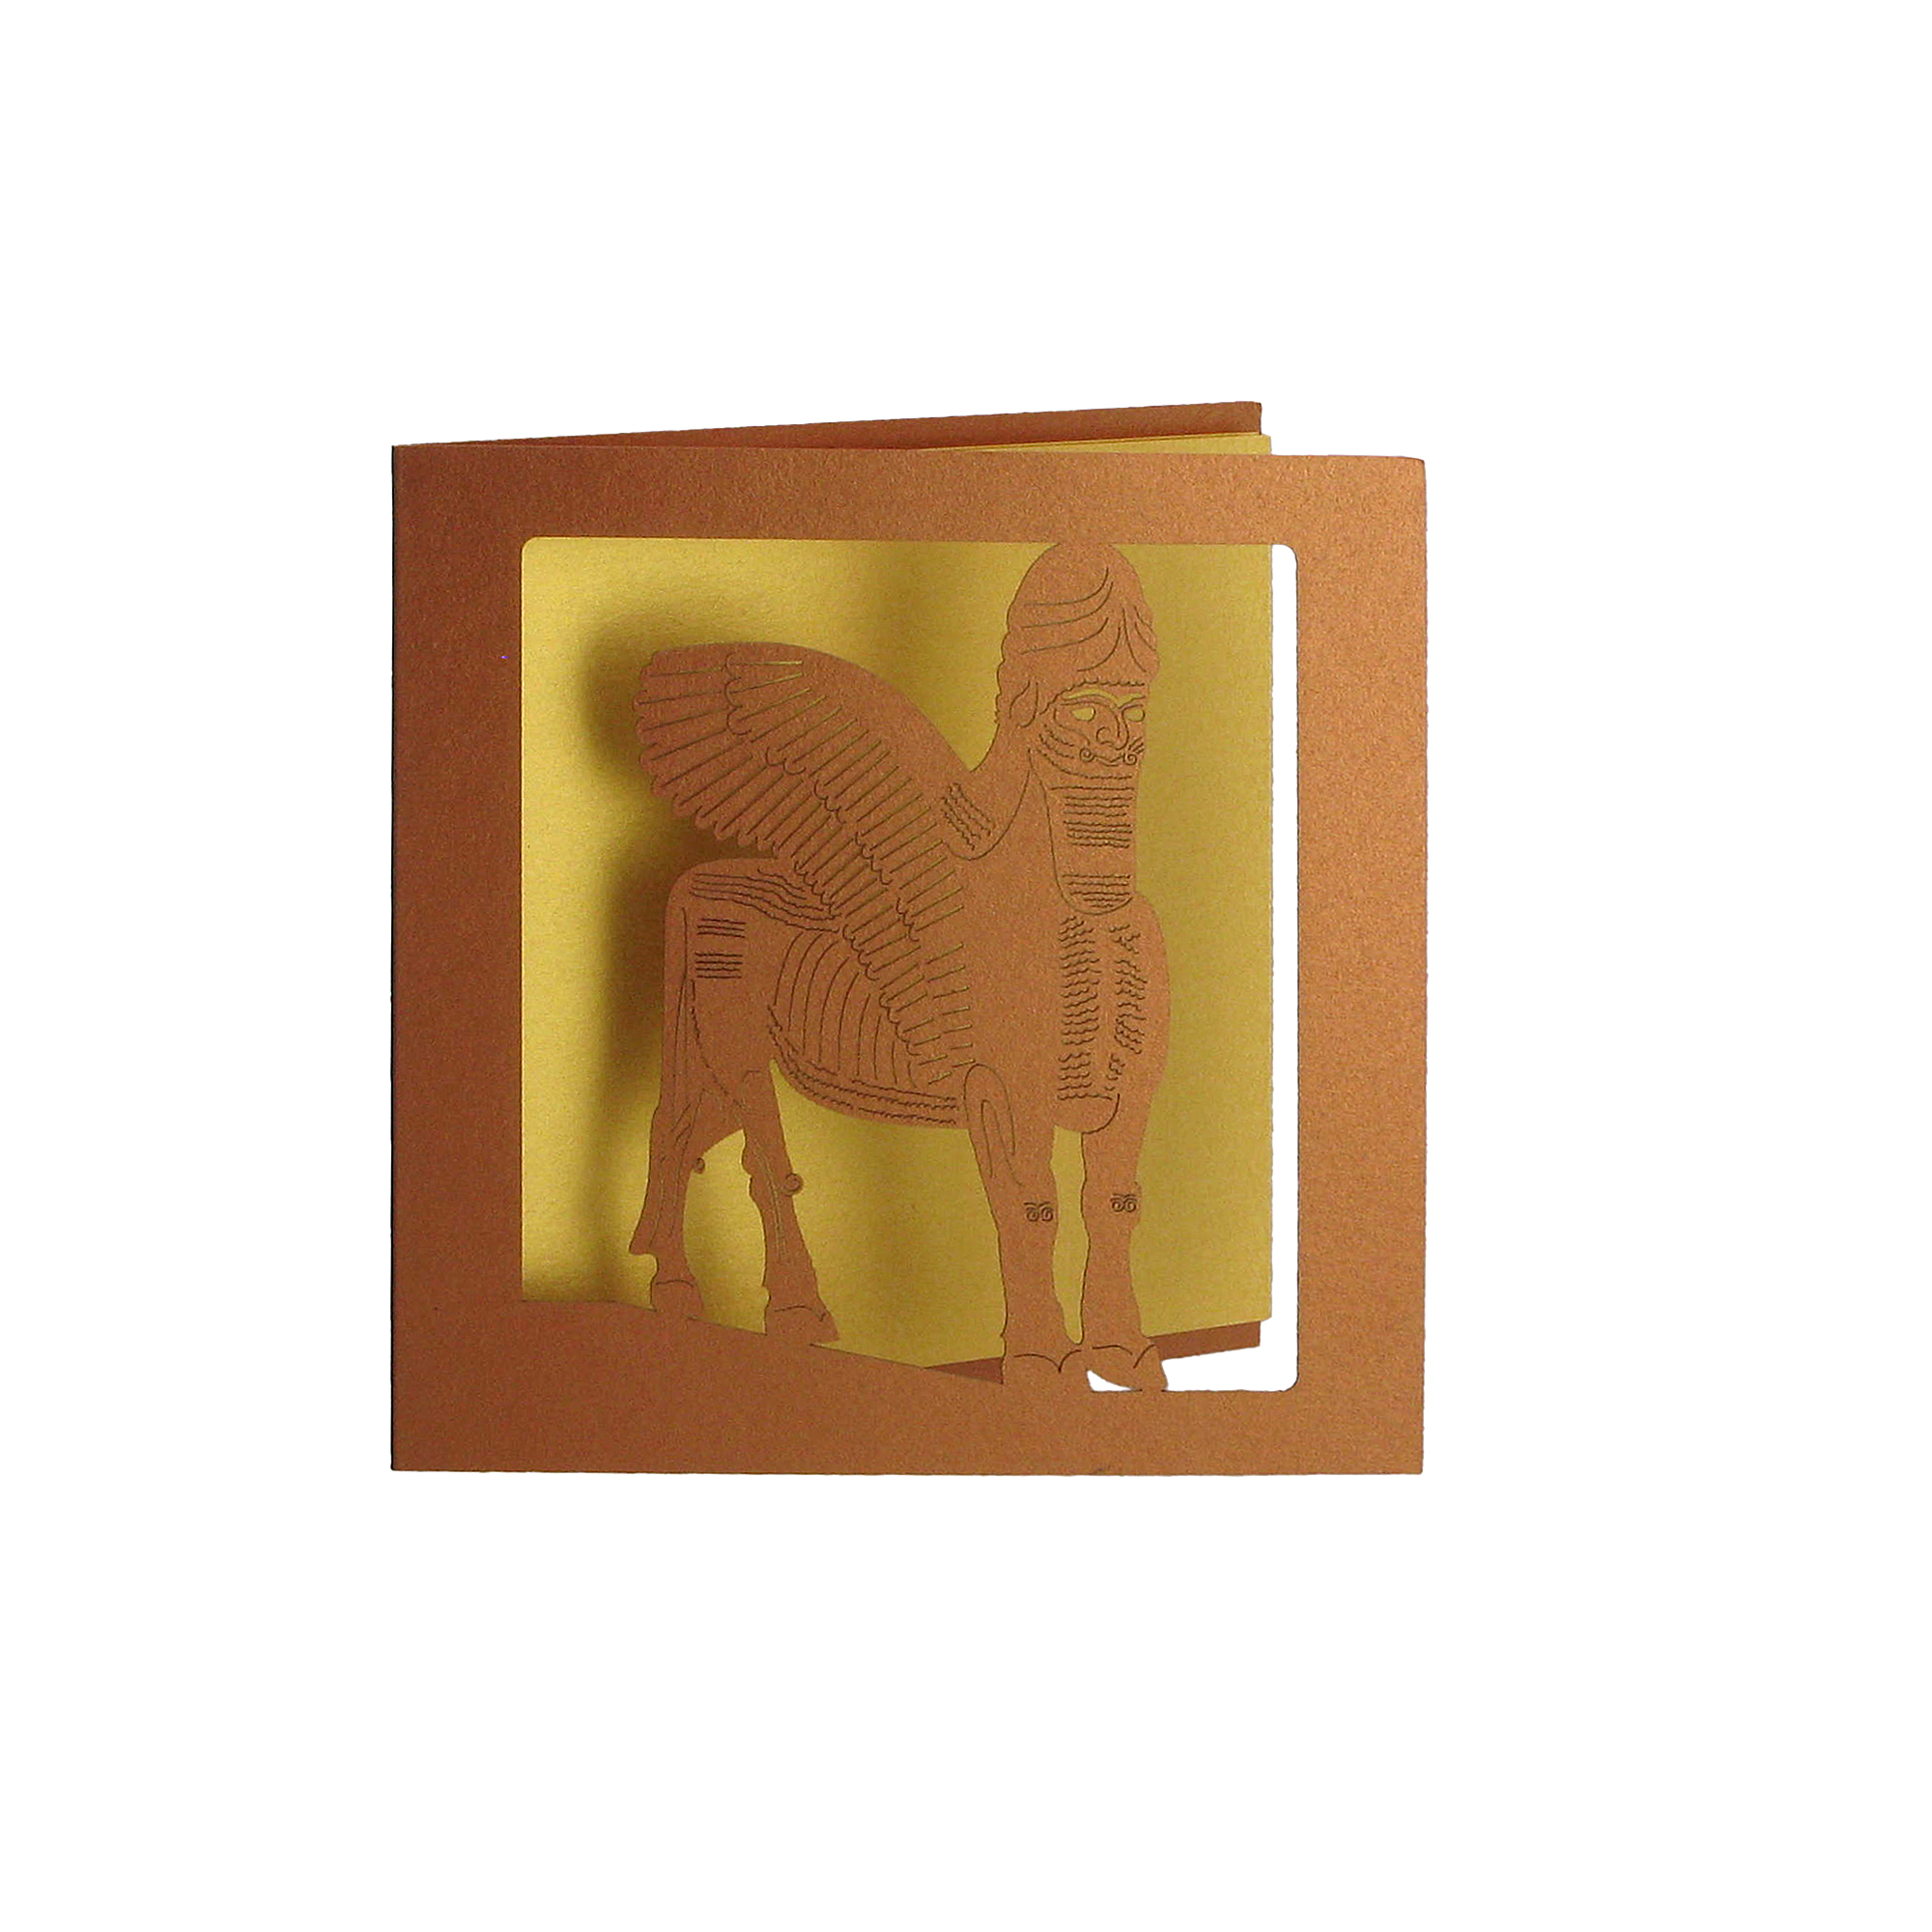 Winged Bull cut out greeting card